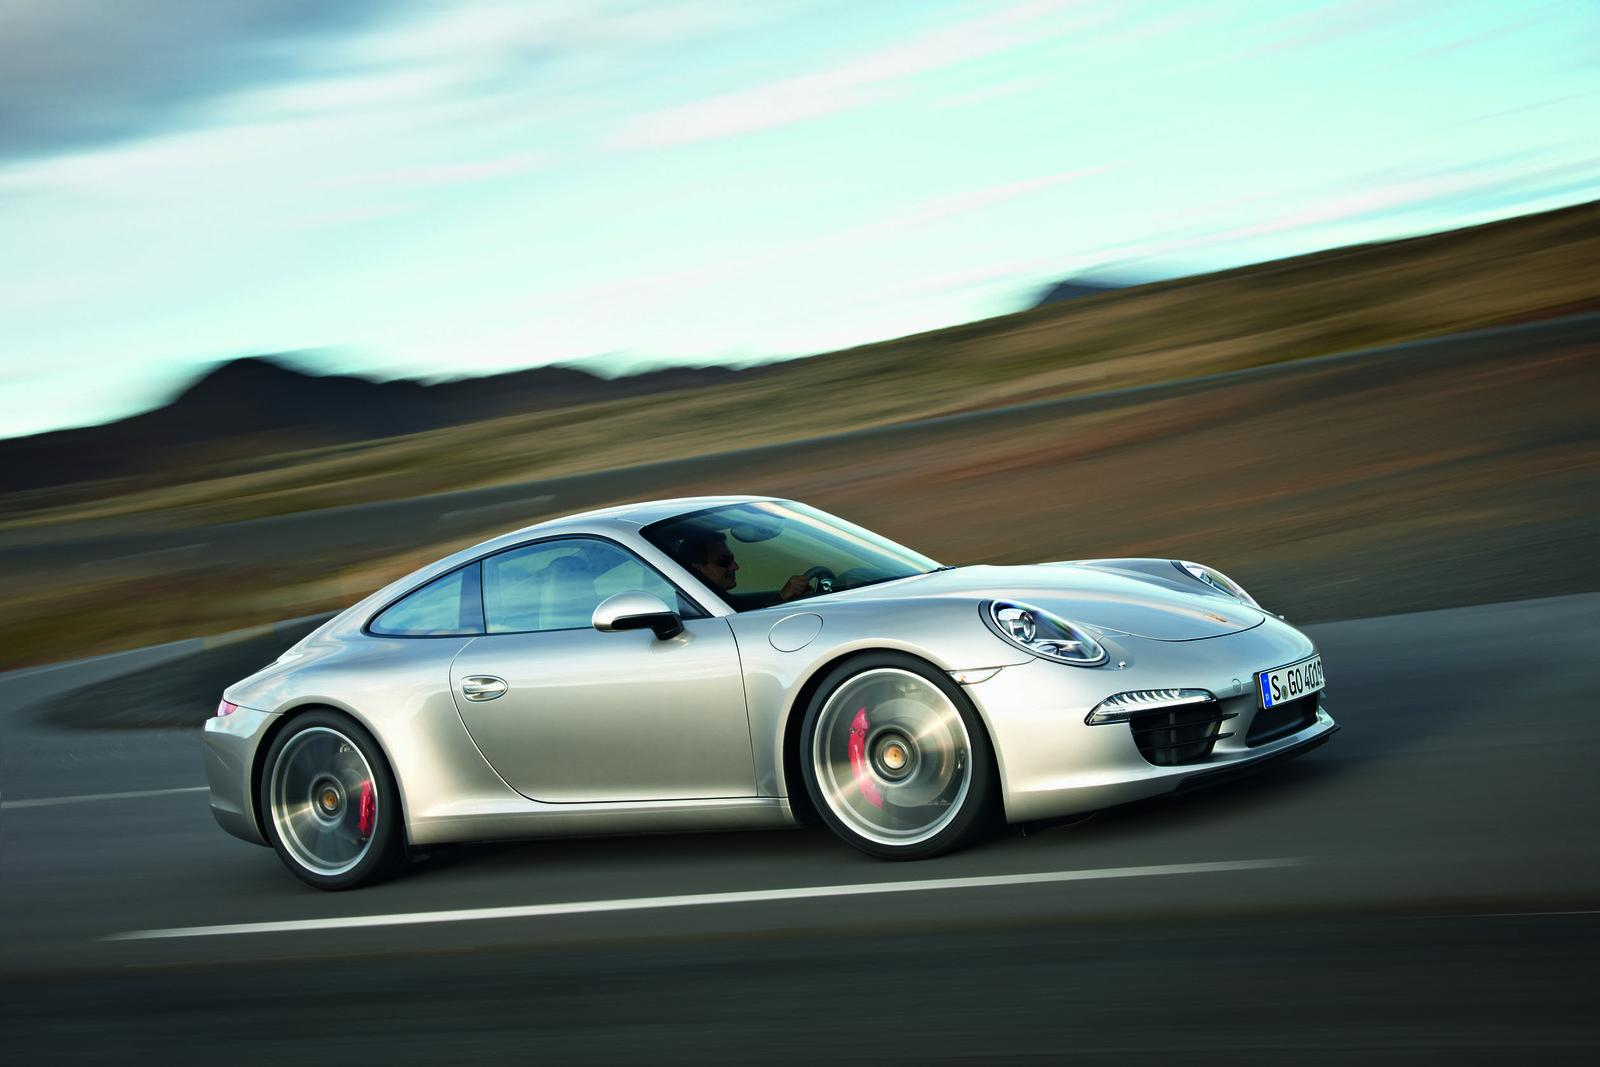 2012-porsche-911-carerra-s-coupe-991-3